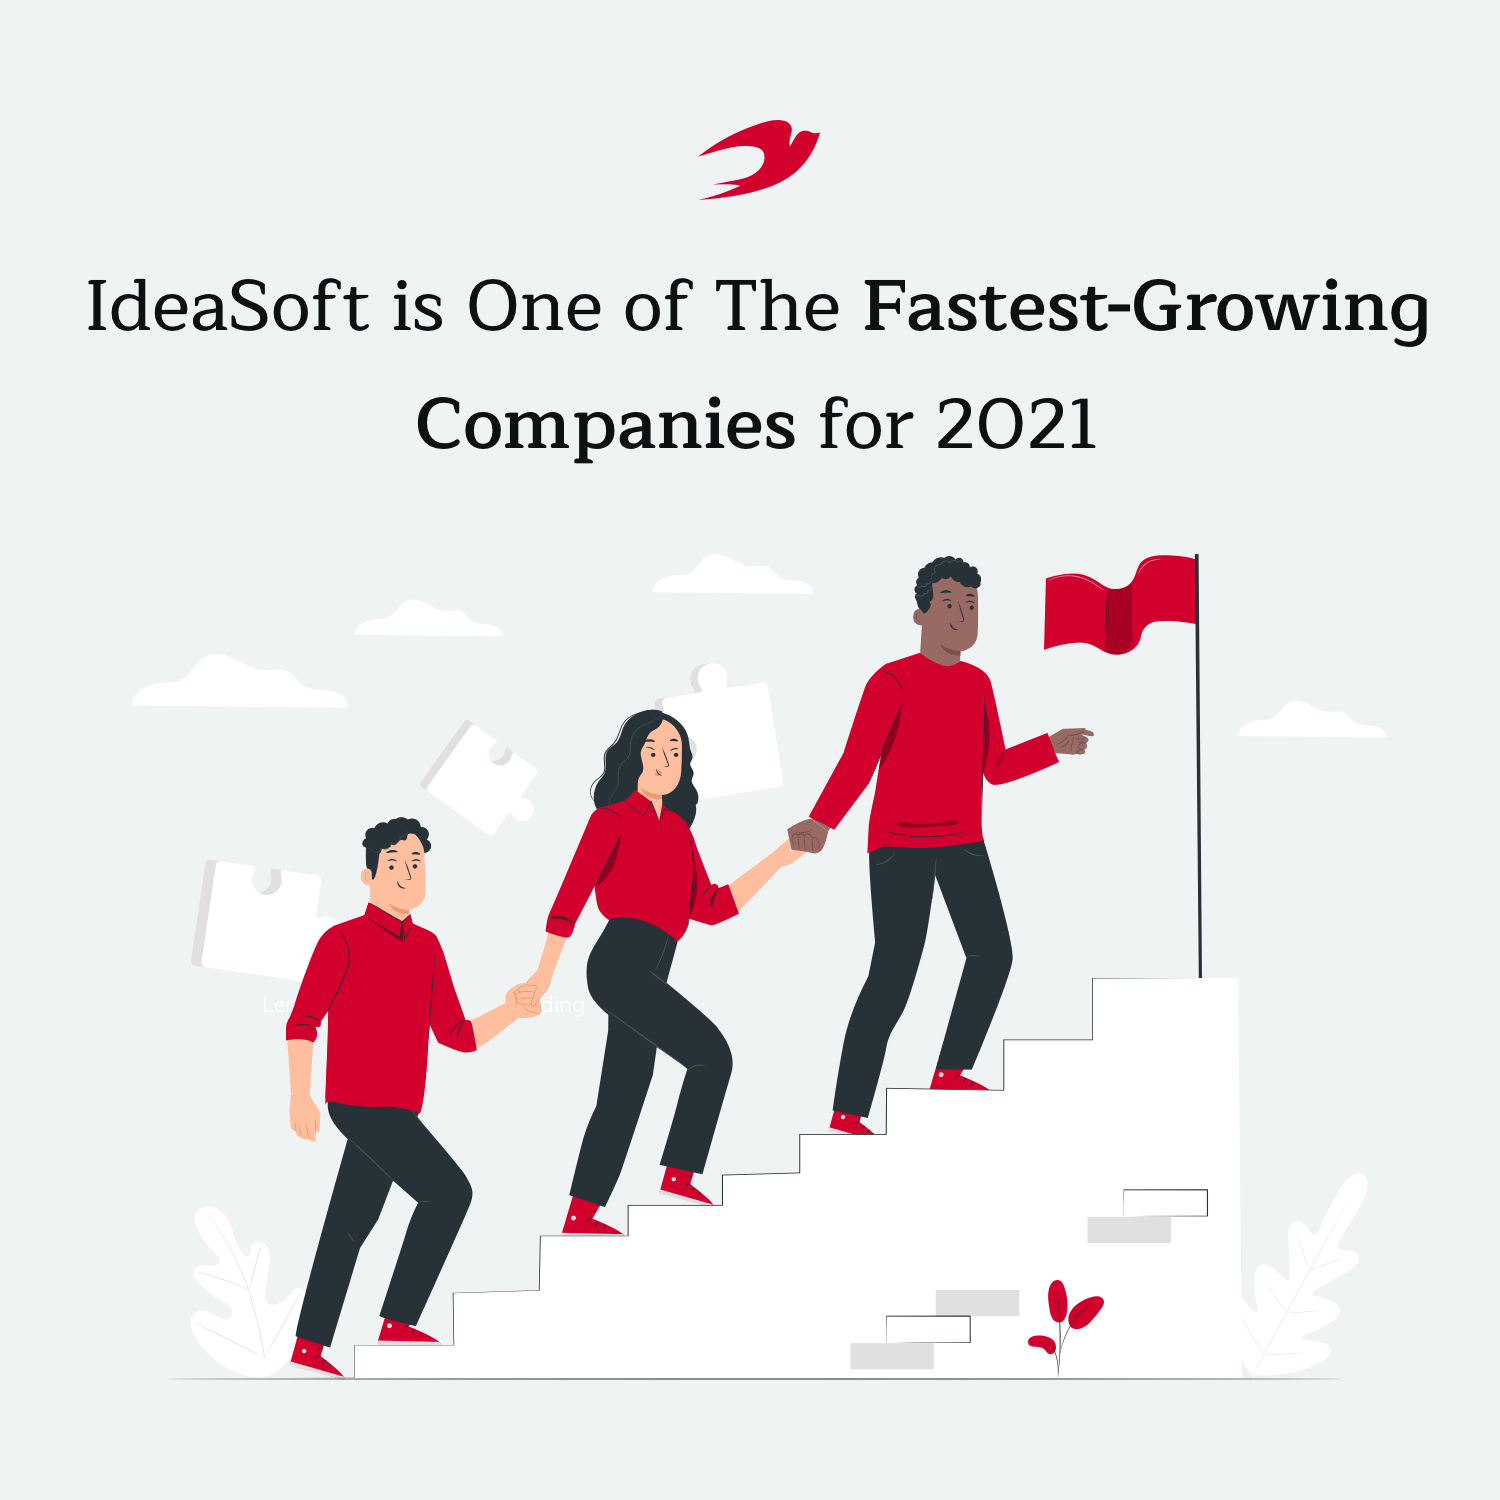 ideasoft is a fastest-growing company preview